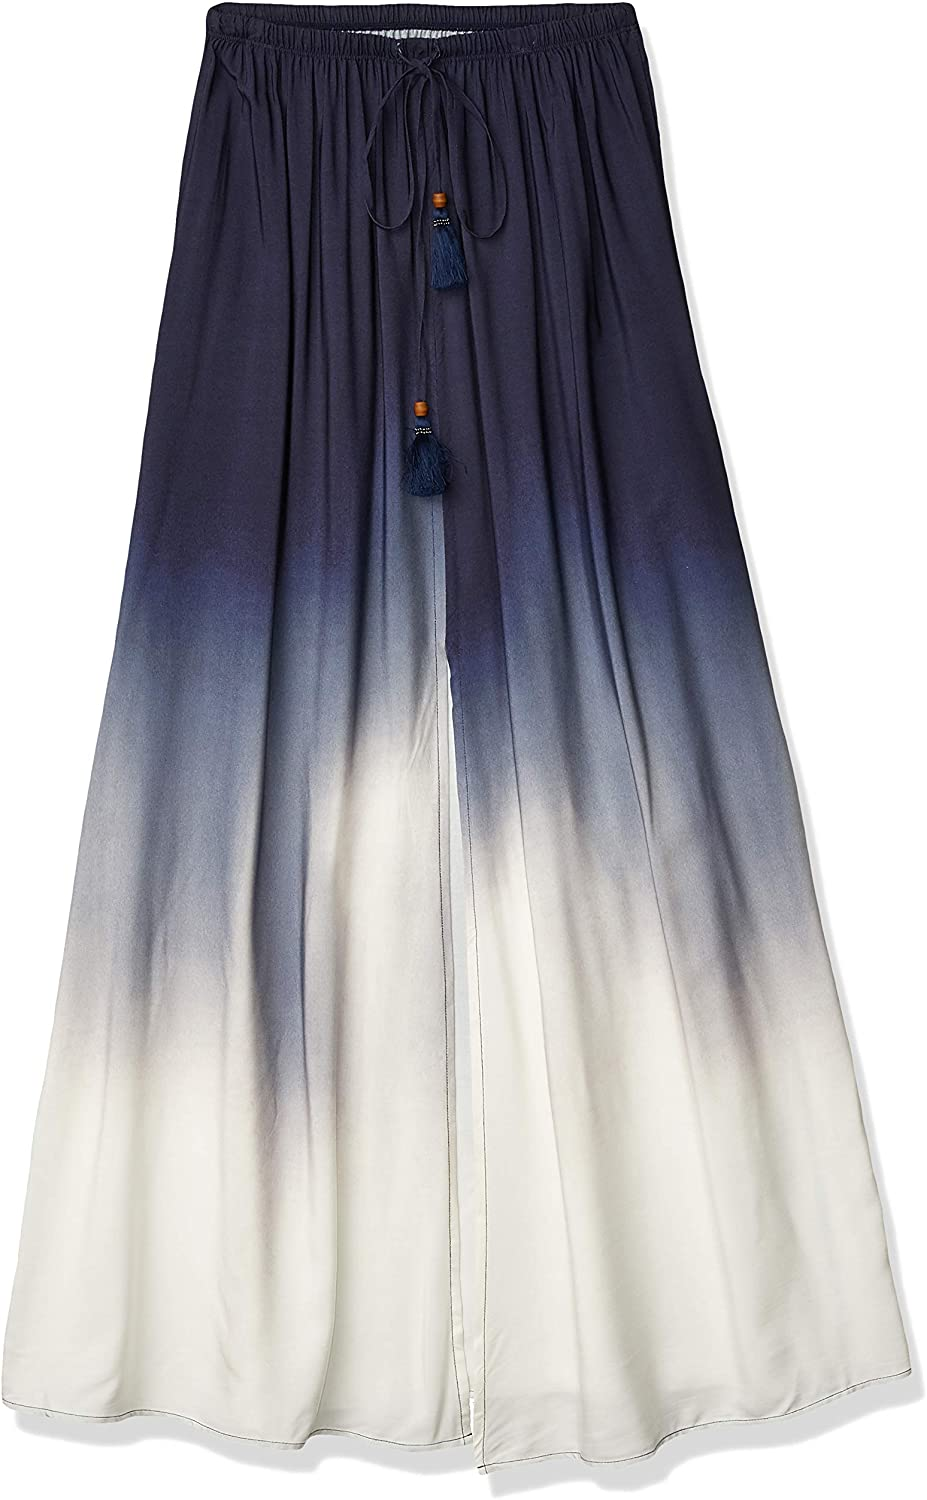 Maaji Women's Long Skirt